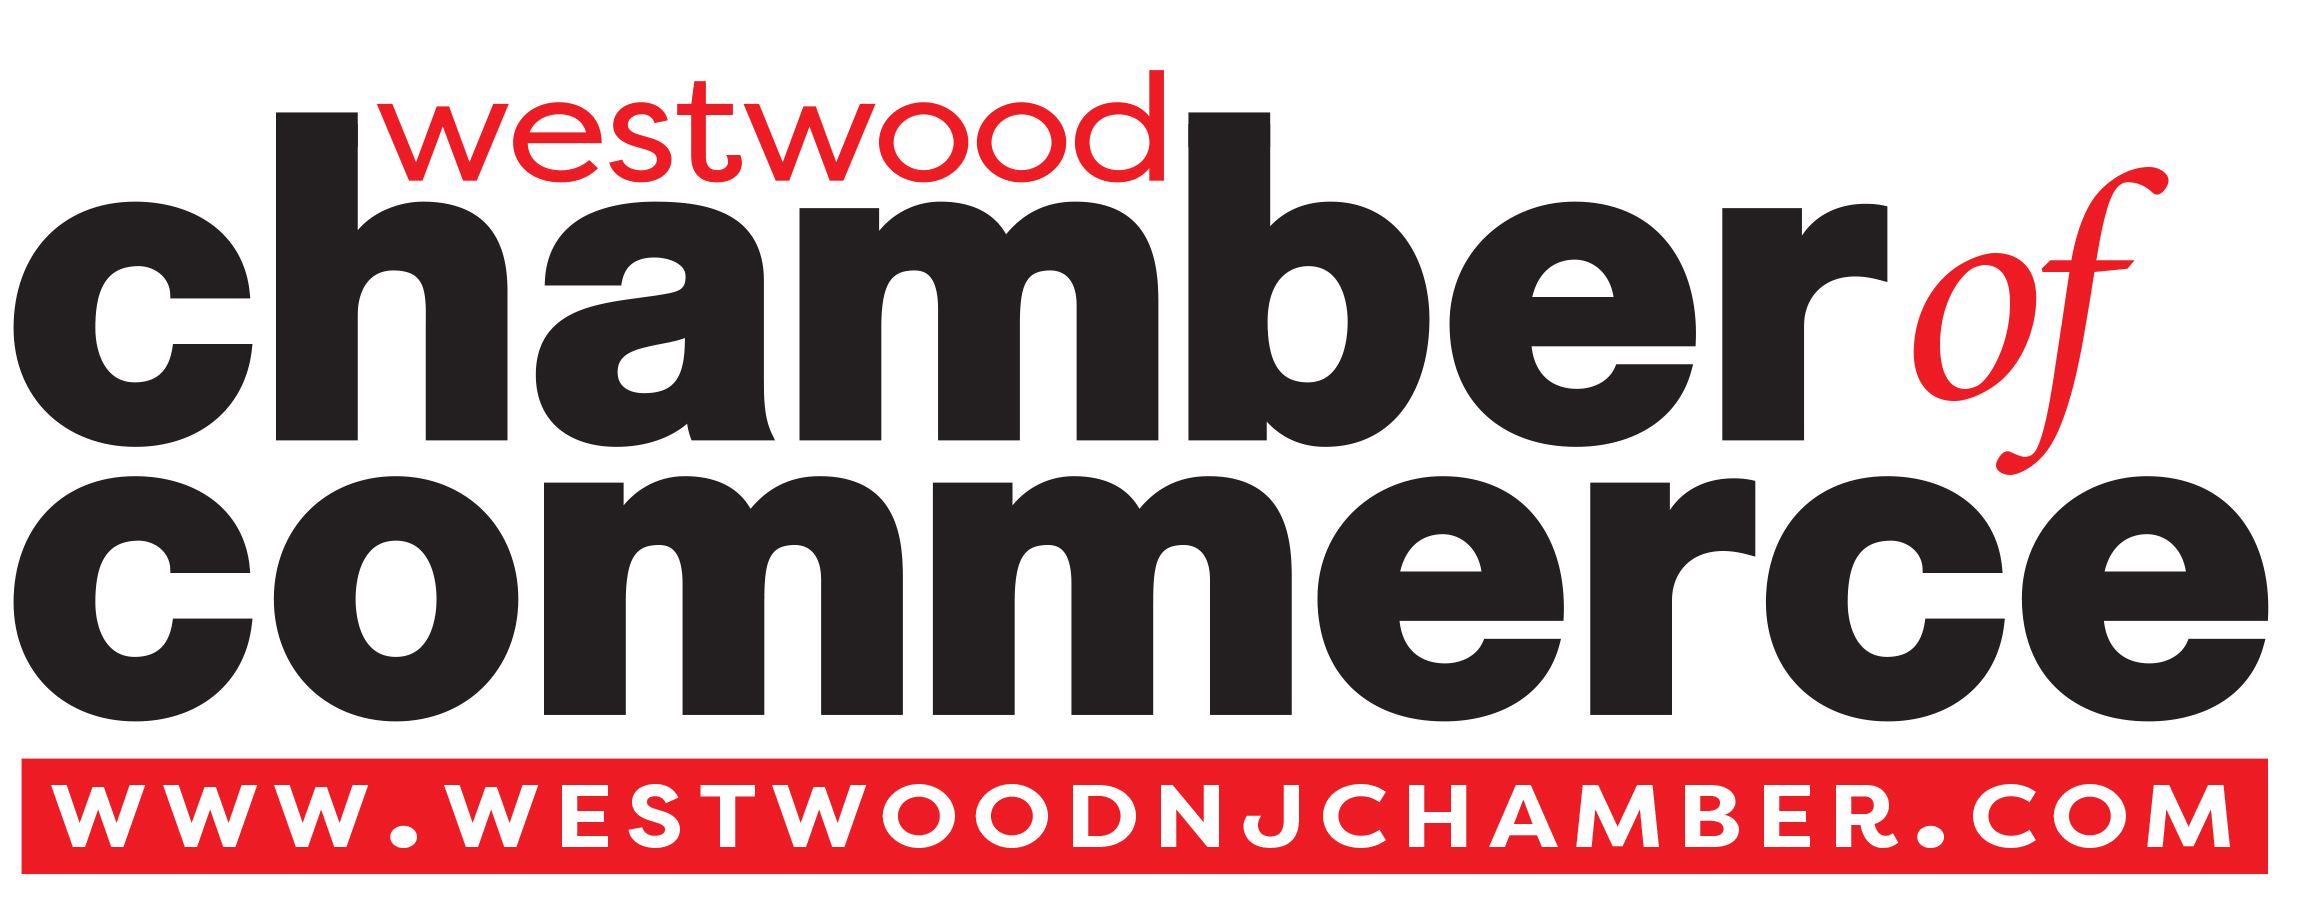 Westwood Chamber of Commerce